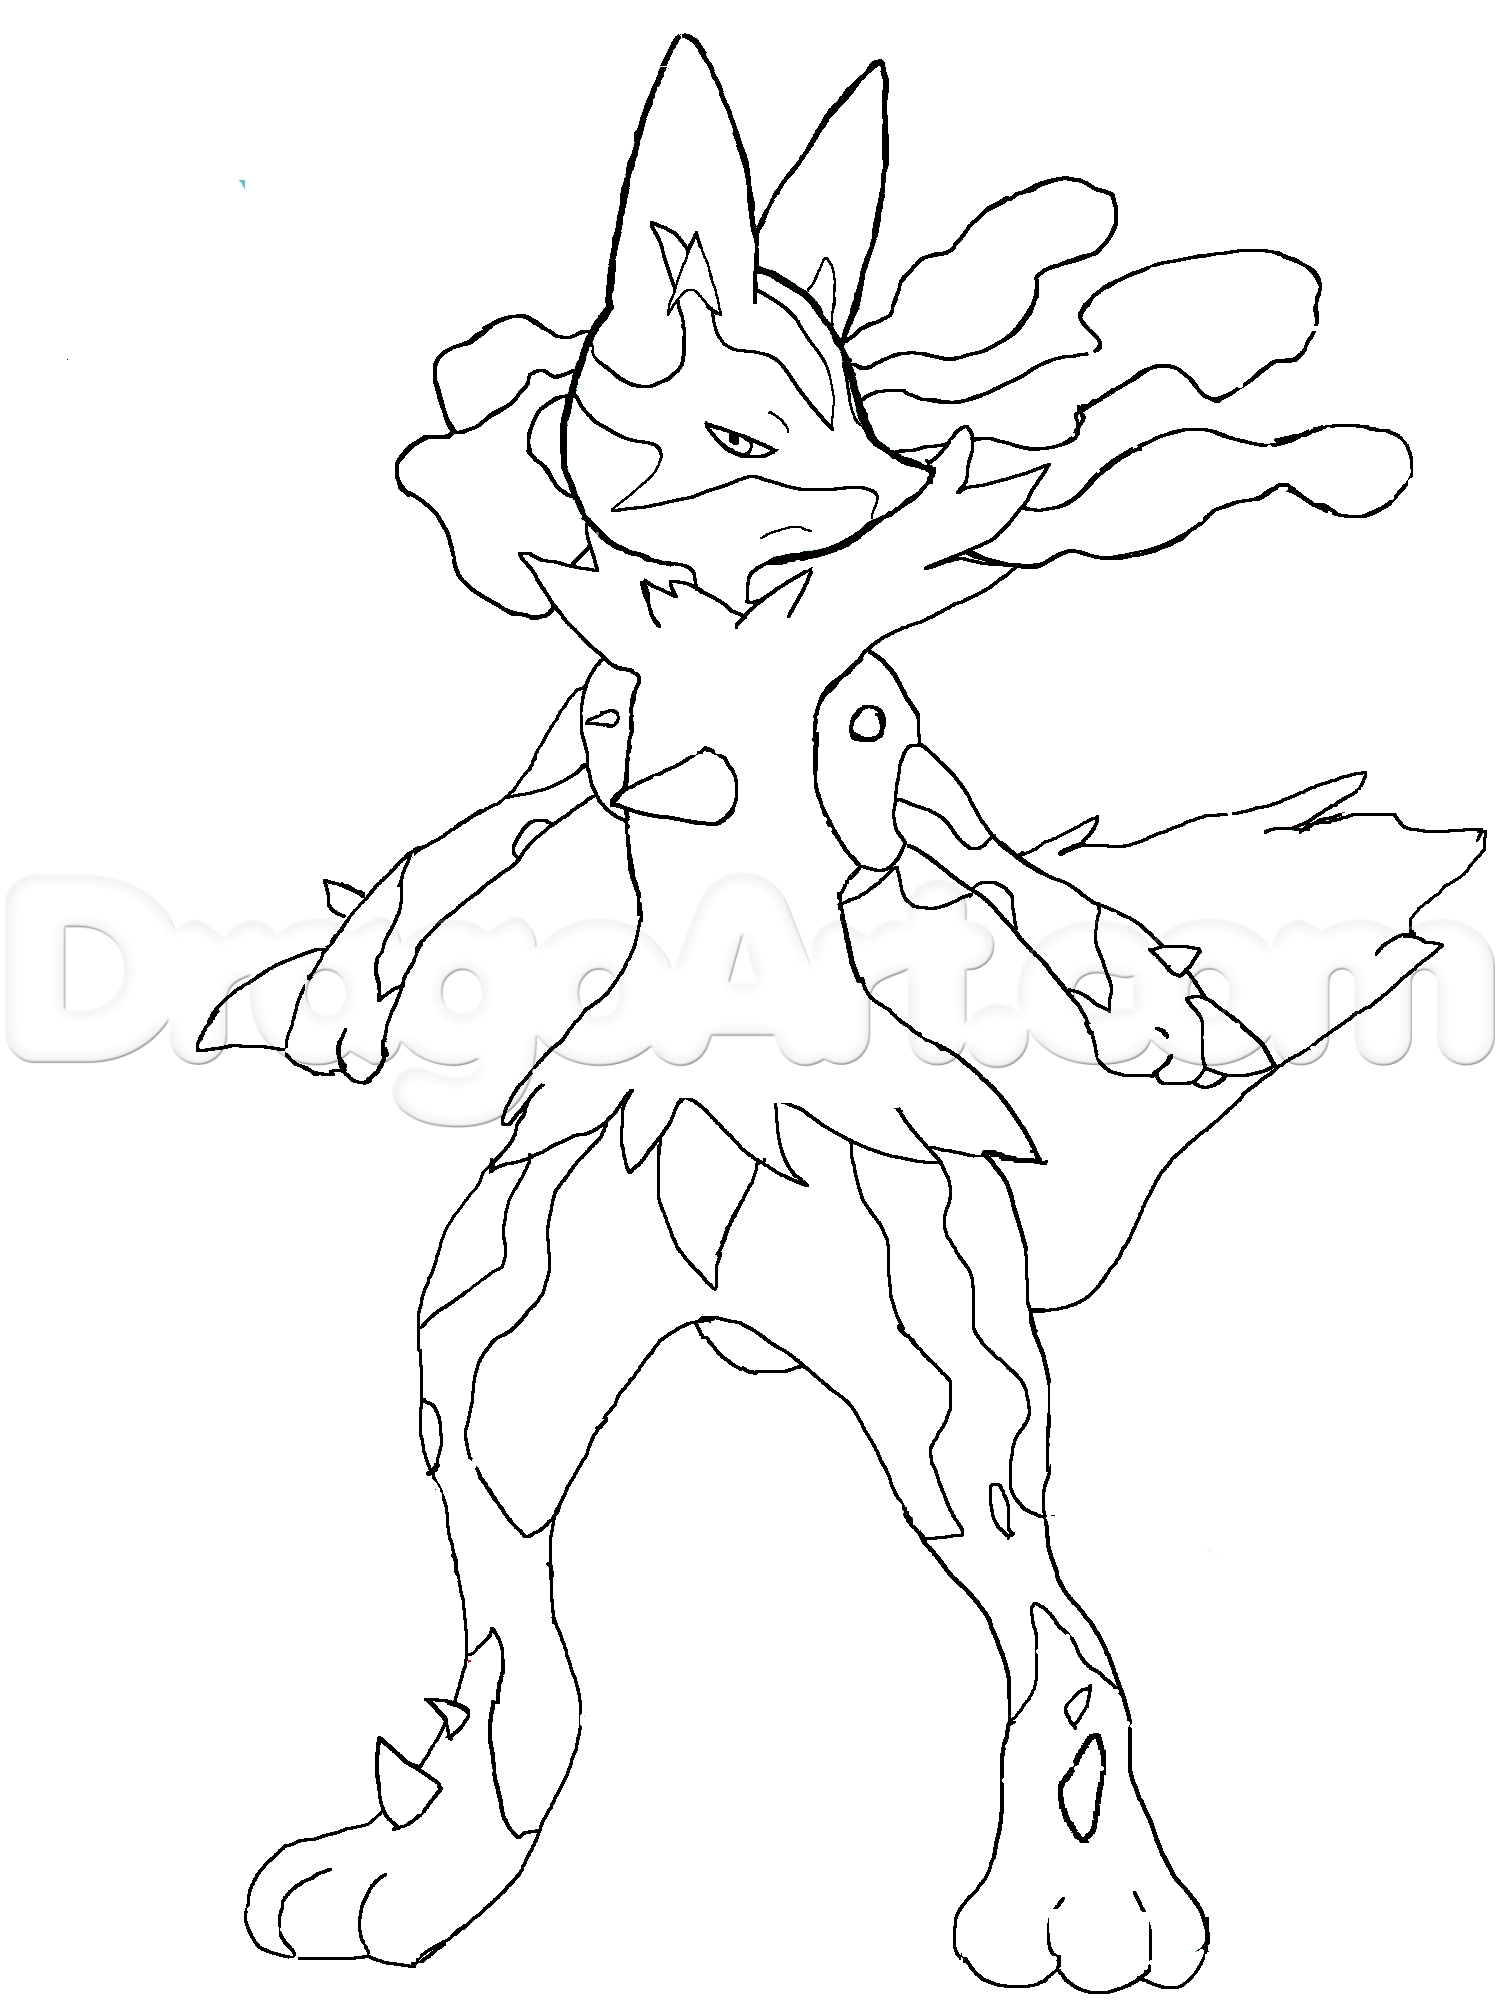 coloring pages of lucario | Mega Lucario Drawing at GetDrawings.com | Free for ...